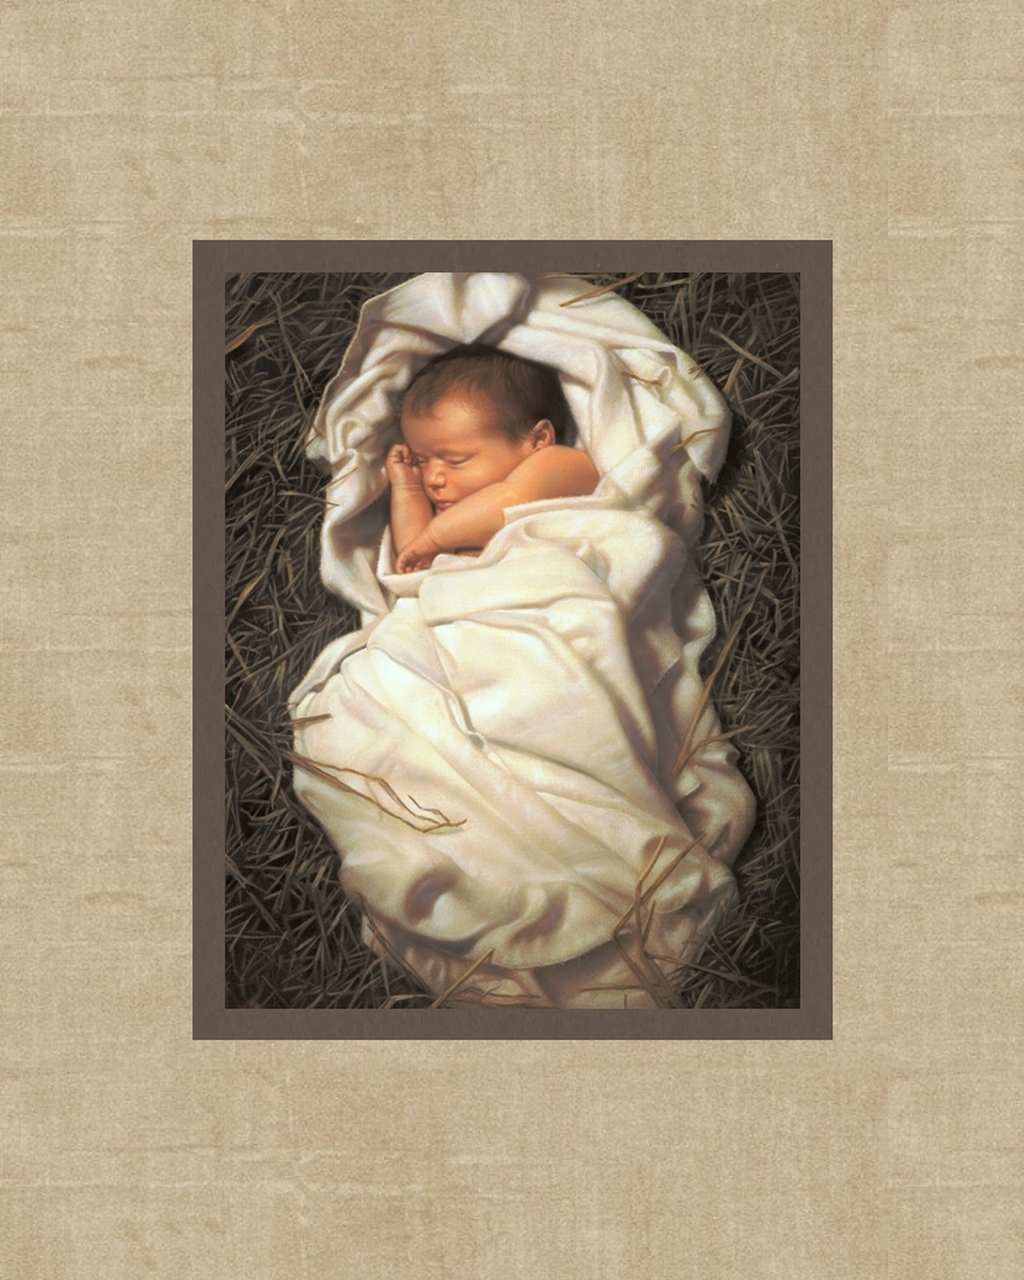 """AF - 8×10 - mat - """"For Unto Us a Child Is Born"""" by Simon Dewey<BR>8×10 マットプリント 「私たちに幼子が与えられた」サイモン・デューイ 画"""